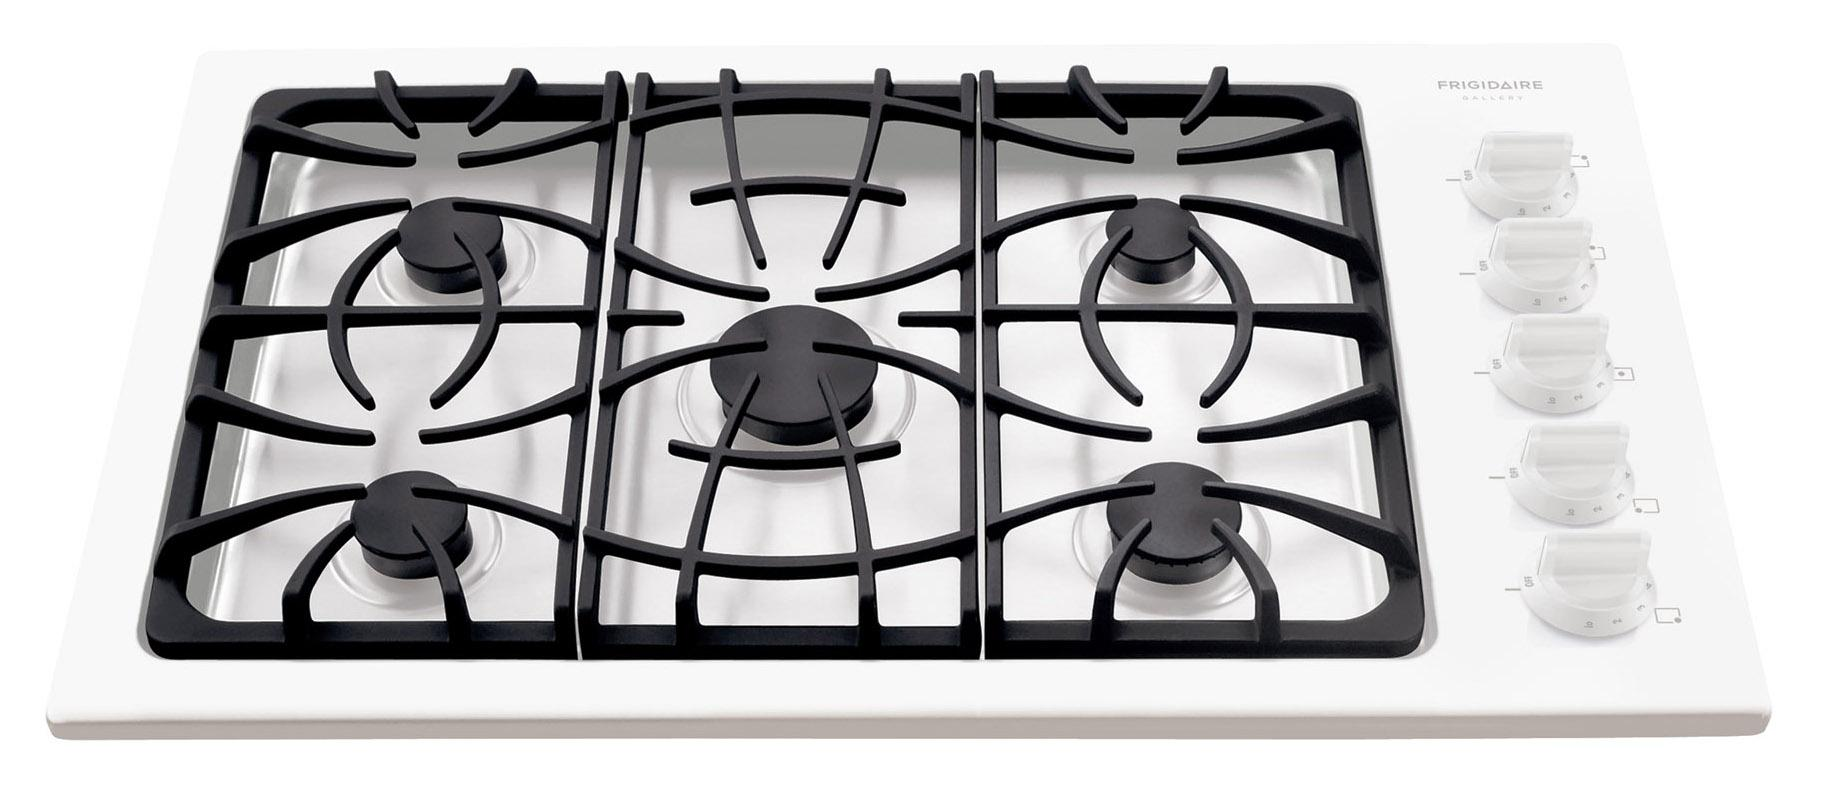 "Frigidaire Gas Cooktop Gallery 36"" Built-In Gas Cooktop - Item Number: FGGC3645KW"